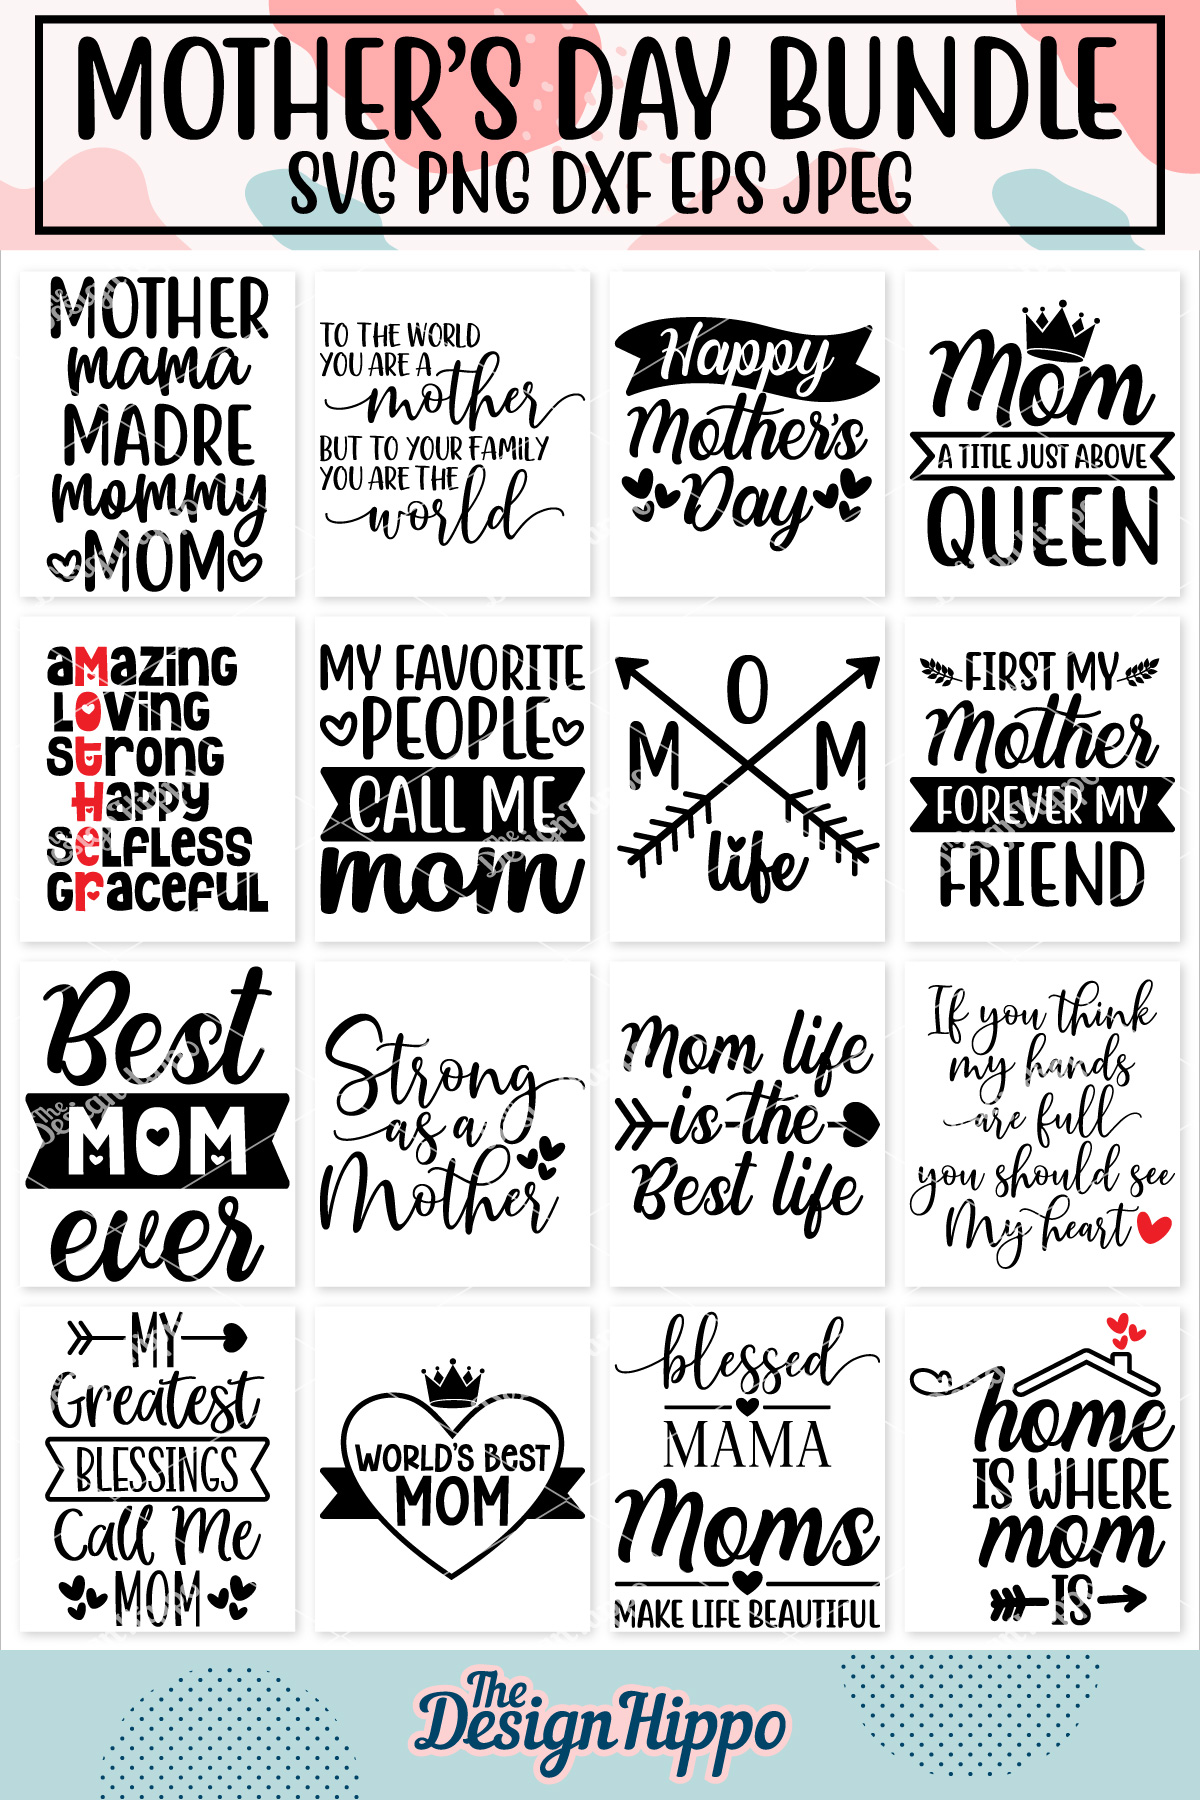 Mom Quotes SVG Bundle, 20 Designs, SVG PNG DXF Cutting Files example image 23